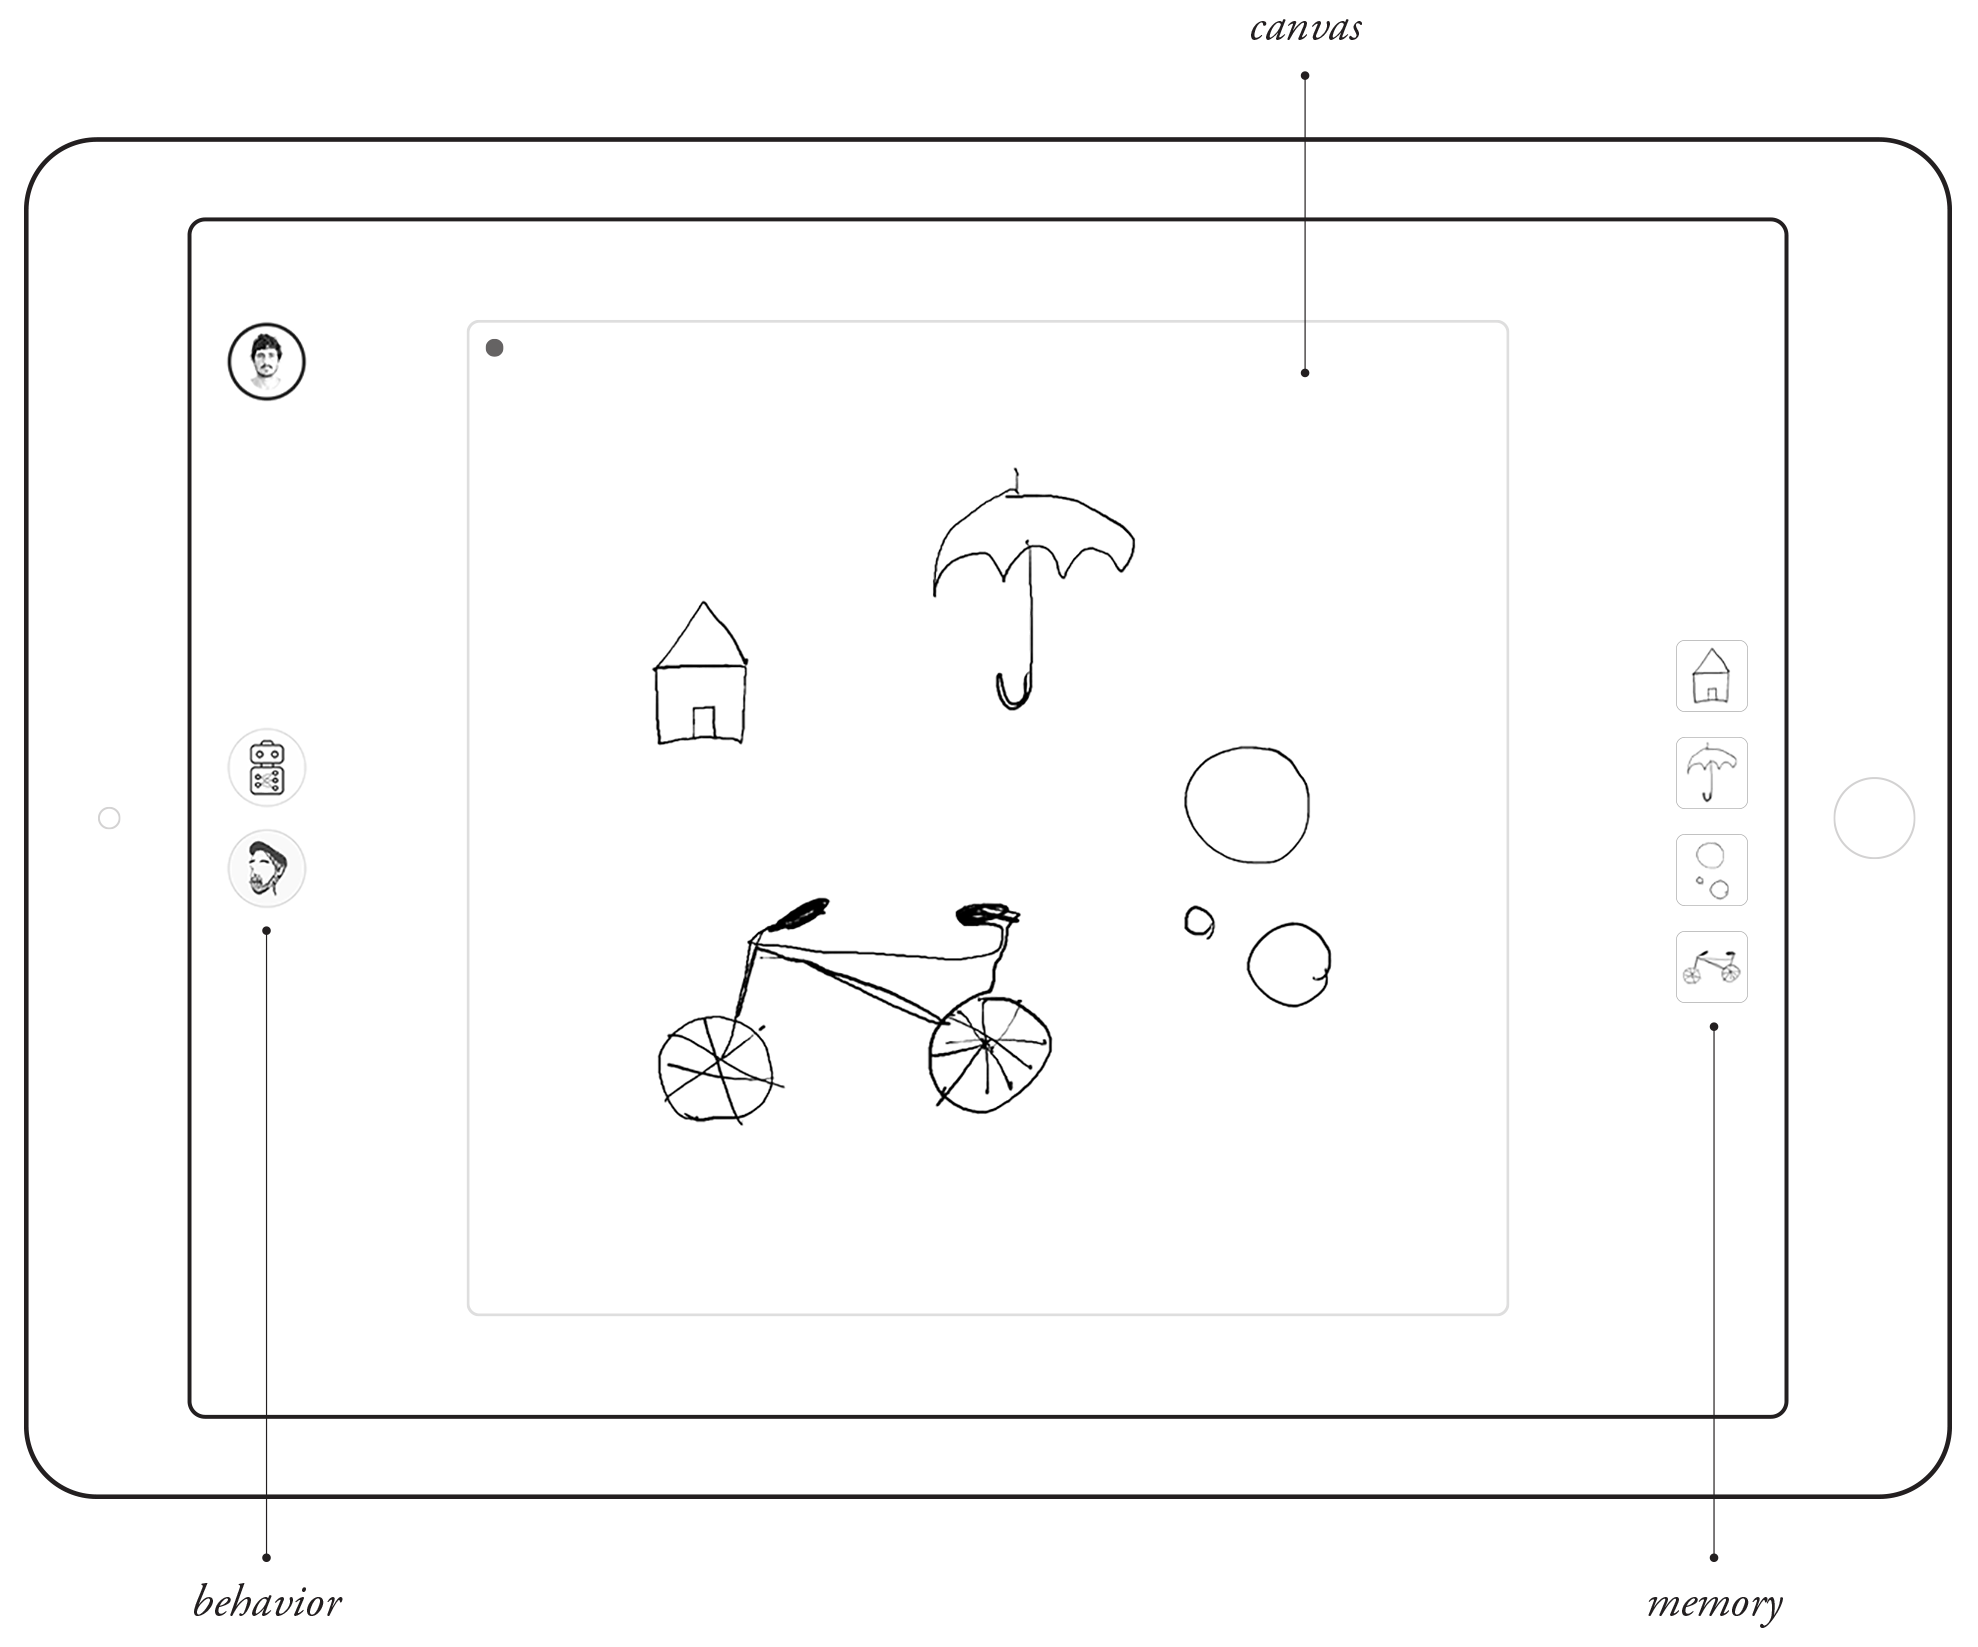 Drawing computers simple. Suggestive among human and